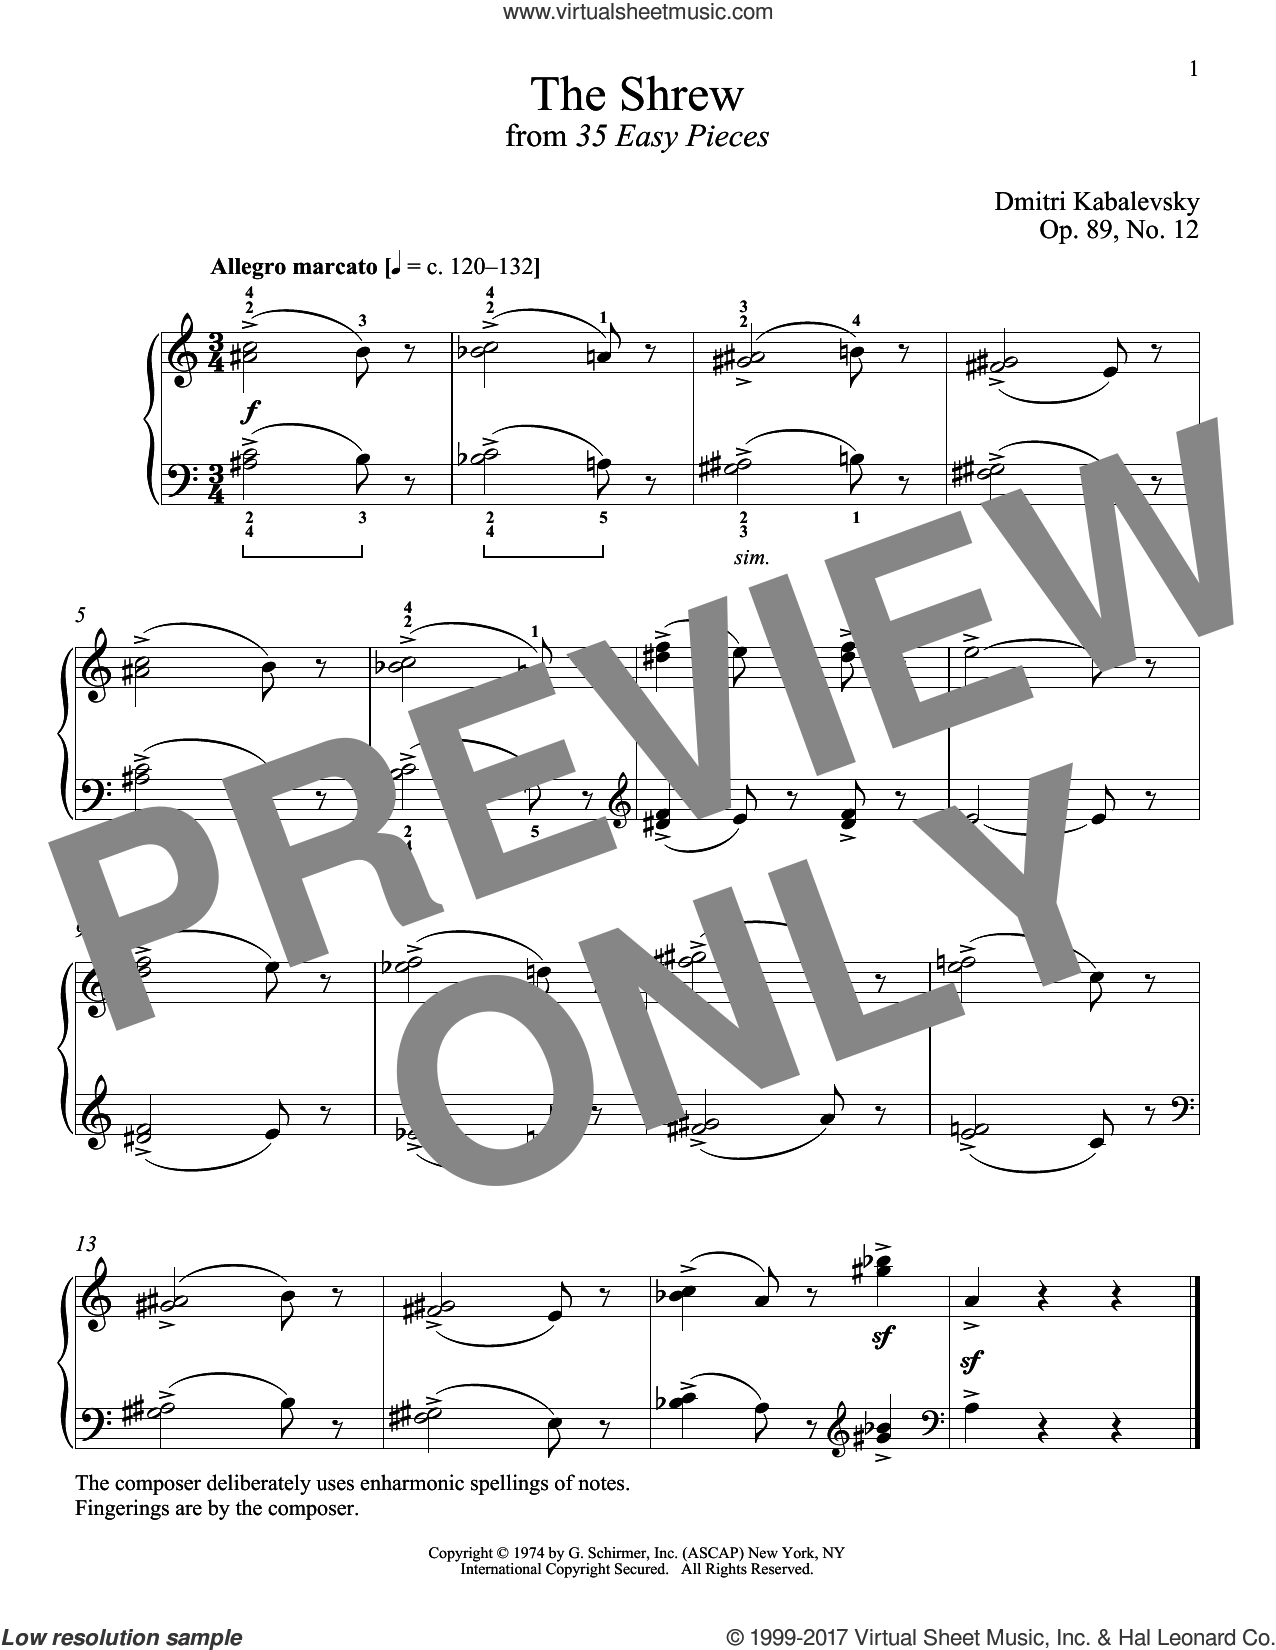 The Shrew, Op. 89, No. 12 sheet music for piano solo by Dmitri Kabalevsky and Richard Walters, classical score, intermediate skill level